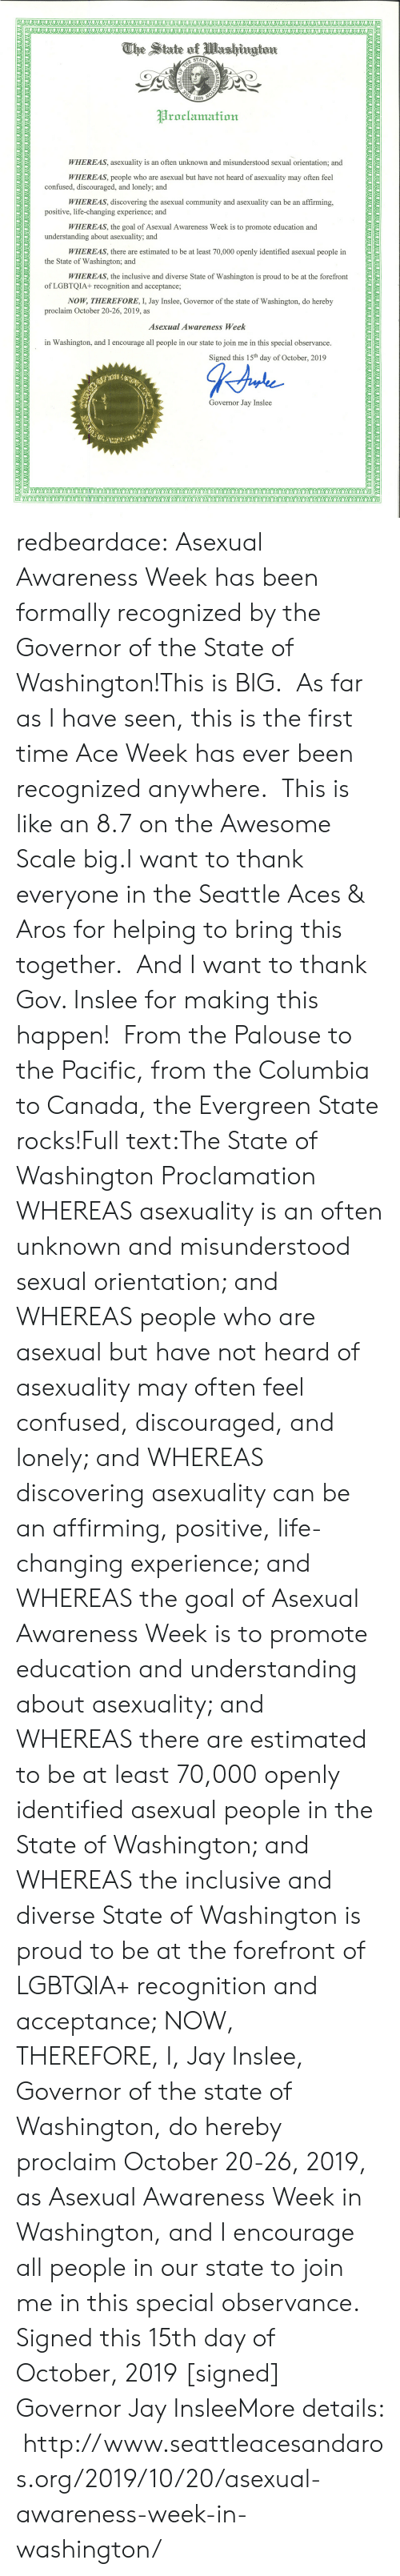 Community, Confused, and Jay: The State of Washington  OF  STATE  THE  стоN  1889  THE  Proclamation  WHEREAS, asexuality is an often unknown and misunderstood sexual orientation; and  WHEREAS, people who are asexual but have not heard of asexuality may often feel  confused, discouraged, and lonely; and  WHEREAS, discovering the asexual community and asexuality can be an affirming,  positive, life-changing experience; and  WHEREAS, the goal of Asexual Awareness Week is to promote education and  understanding about asexuality; and  WHEREAS, there are estimated to be at least 70,000 openly identified asexual people in  the State of Washington; and  WHEREAS, the inclusive and diverse State of Washington is proud to be at the forefront  of LGBTQIA+ recognition and acceptance;  NOW, THEREFORE, I, Jay Inslee, Governor of the state of Washington, do hereby  proclaim October 20-26, 2019, as  Asexual Awareness Week  in Washington, and I encourage all people in our state to join me in this special observance  Signed this 15th day of October, 2019  Governor Jay Inslee  YOVOYOVYOYOYO  OCADADAOAOOADADADAOOAOAOAOAGAOAOACAOAO  OOO0AOVADADADACOADOAOAODAOAOAOAOODAOOOADAD  JADADACAOAVACAUACAOVACAOAOADAGACACADADACAOAOOACADACCADACAUAO  YOYOYOYOYOY  OYOYOYOYOYOOYOYOOYOWOYO redbeardace:  Asexual Awareness Week has been formally recognized by the Governor of the State of Washington!This is BIG.  As far as I have seen, this is the first time Ace Week has ever been recognized anywhere.  This is like an 8.7 on the Awesome Scale big.I want to thank everyone in the Seattle Aces & Aros for helping to bring this together.  And I want to thank Gov. Inslee for making this happen!  From the Palouse to the Pacific, from the Columbia to Canada, the Evergreen State rocks!Full text:The State of Washington  Proclamation WHEREAS asexuality is an often unknown and misunderstood sexual orientation; and WHEREAS people who are asexual but have not heard of asexuality may often feel confused, discouraged, and lonely; and WHEREAS discovering asexuality can be an affirming, positive, life-changing experience; and WHEREAS the goal of Asexual Awareness Week is to promote education and understanding about asexuality; and WHEREAS there are estimated to be at least 70,000 openly identified asexual people in the State of Washington; and WHEREAS the inclusive and diverse State of Washington is proud to be at the forefront of LGBTQIA+ recognition and acceptance; NOW, THEREFORE, I, Jay Inslee, Governor of the state of Washington, do hereby proclaim October 20-26, 2019, as Asexual Awareness Week in Washington, and I encourage all people in our state to join me in this special observance. Signed this 15th day of October, 2019 [signed] Governor Jay InsleeMore details:  http://www.seattleacesandaros.org/2019/10/20/asexual-awareness-week-in-washington/